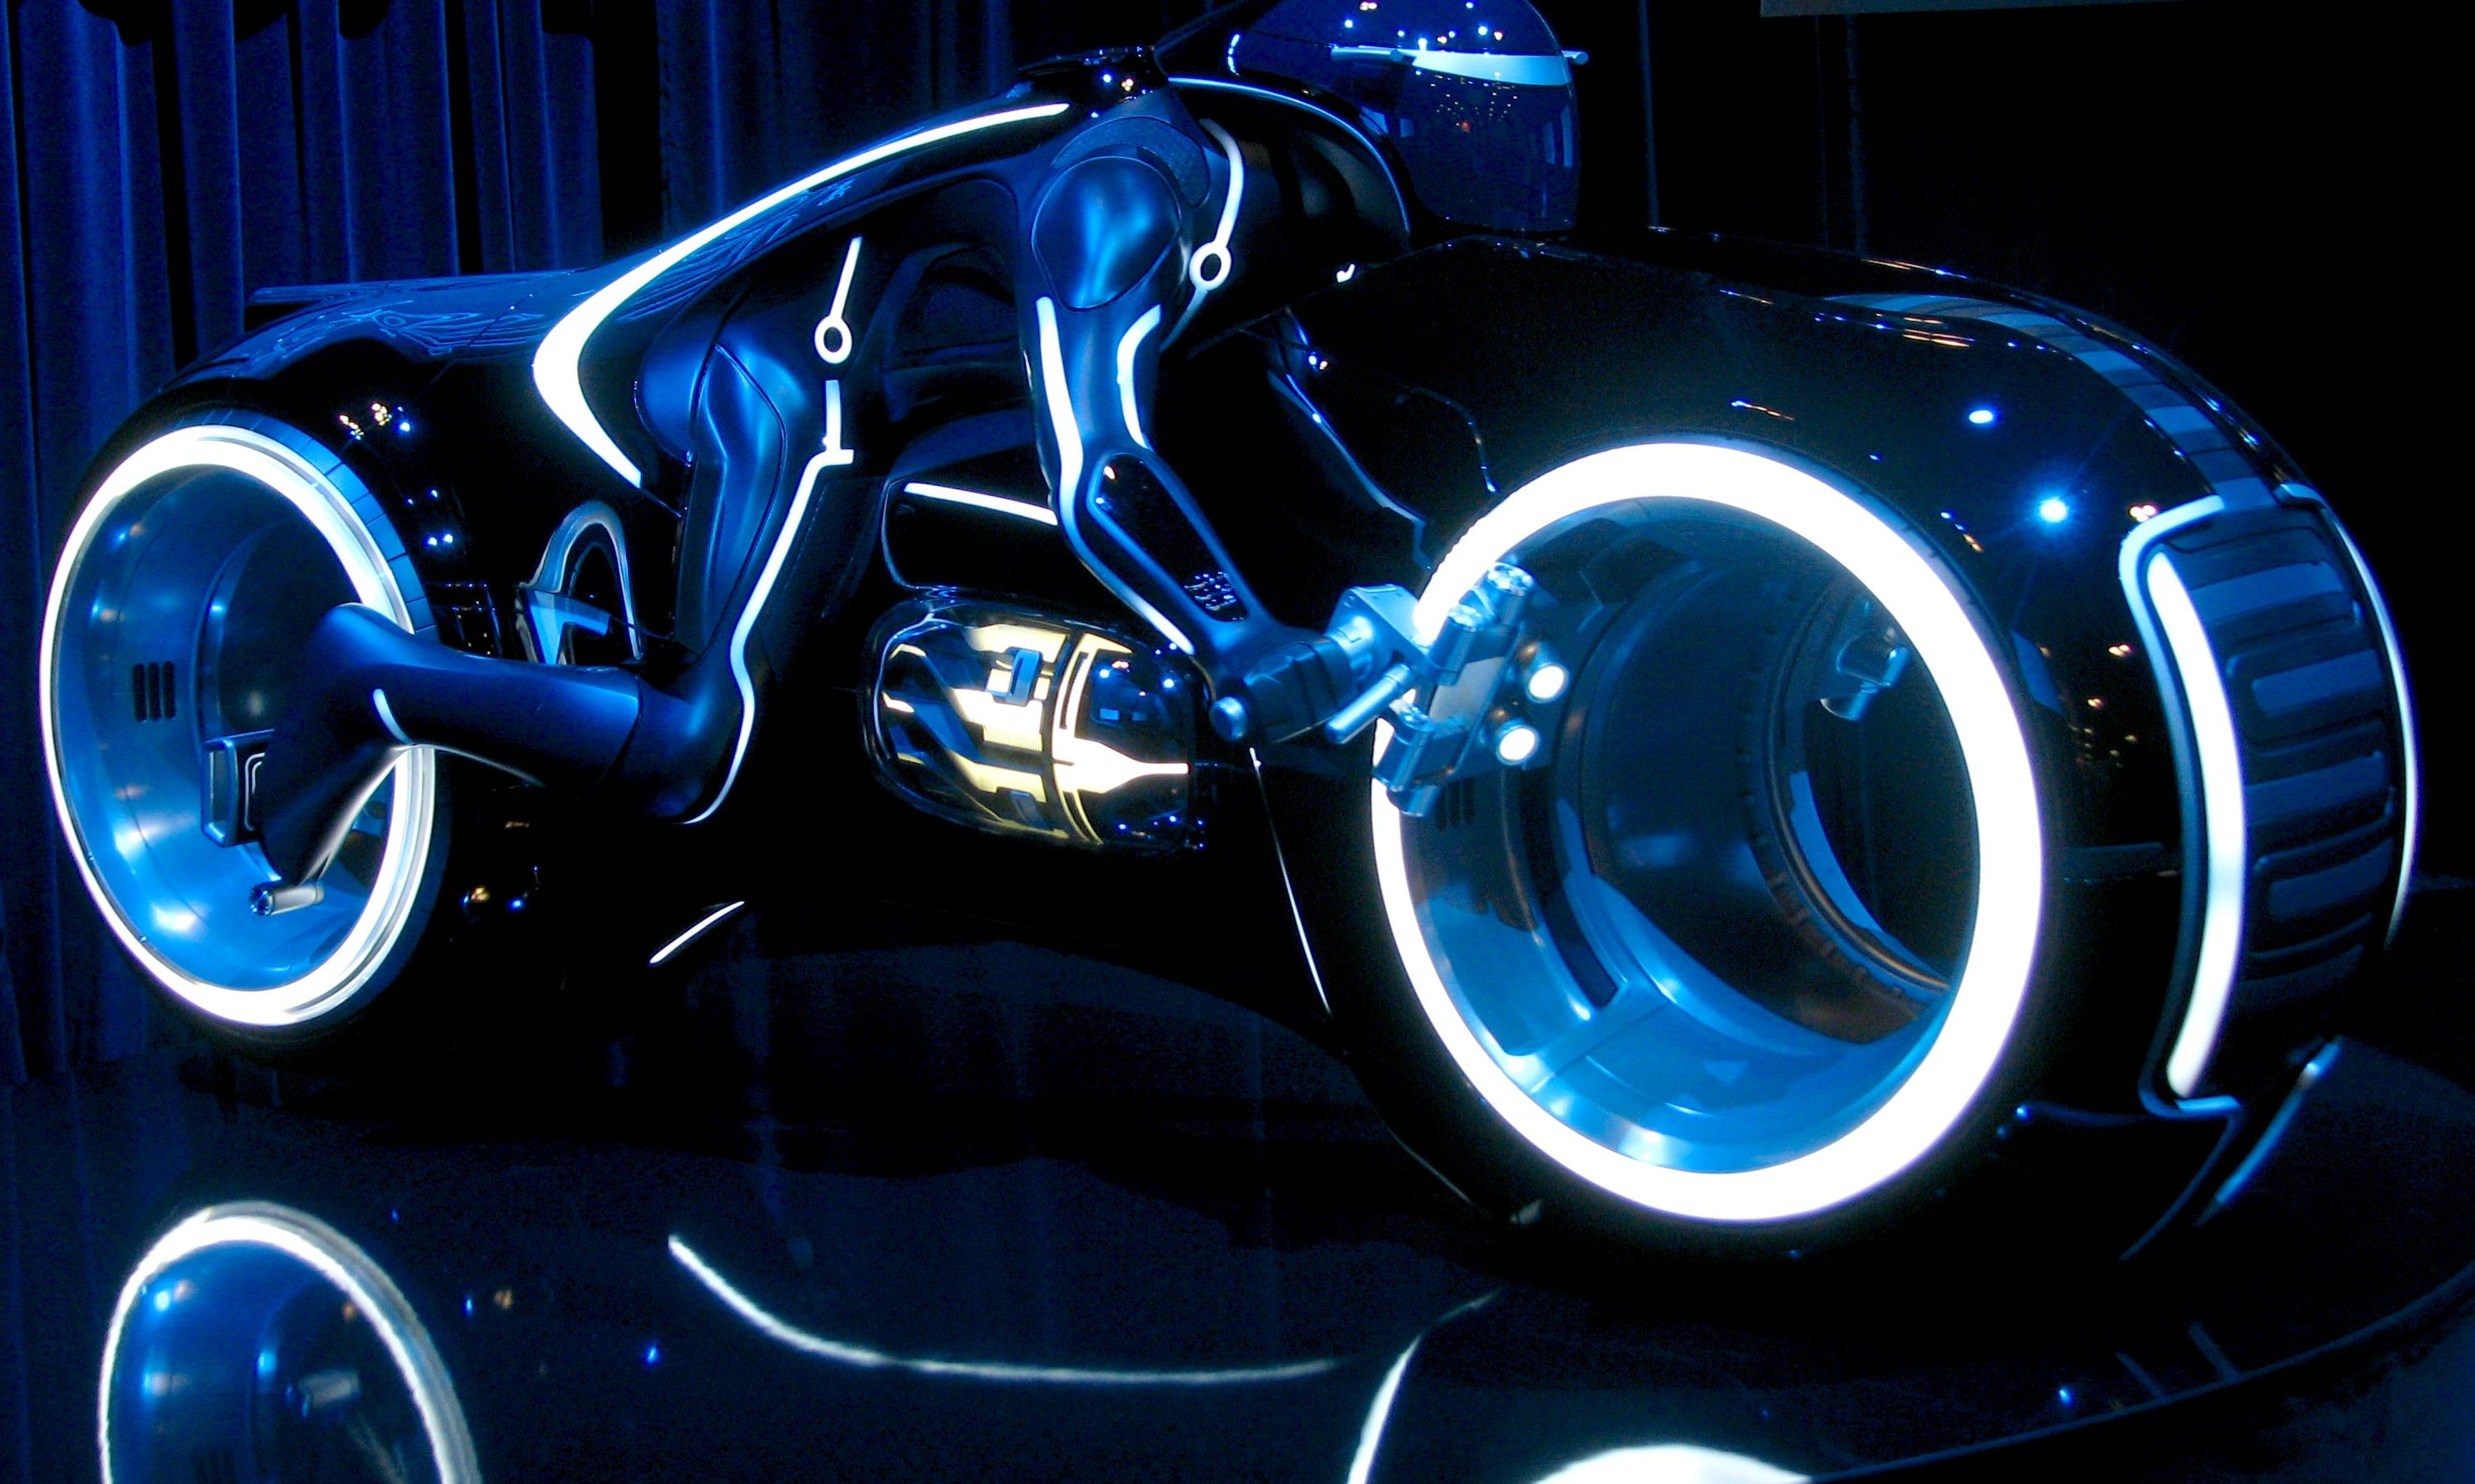 Wallpaper 3d Bike Tron Legacy Download: Tron Legacy Technology Amazing Technology For The Young